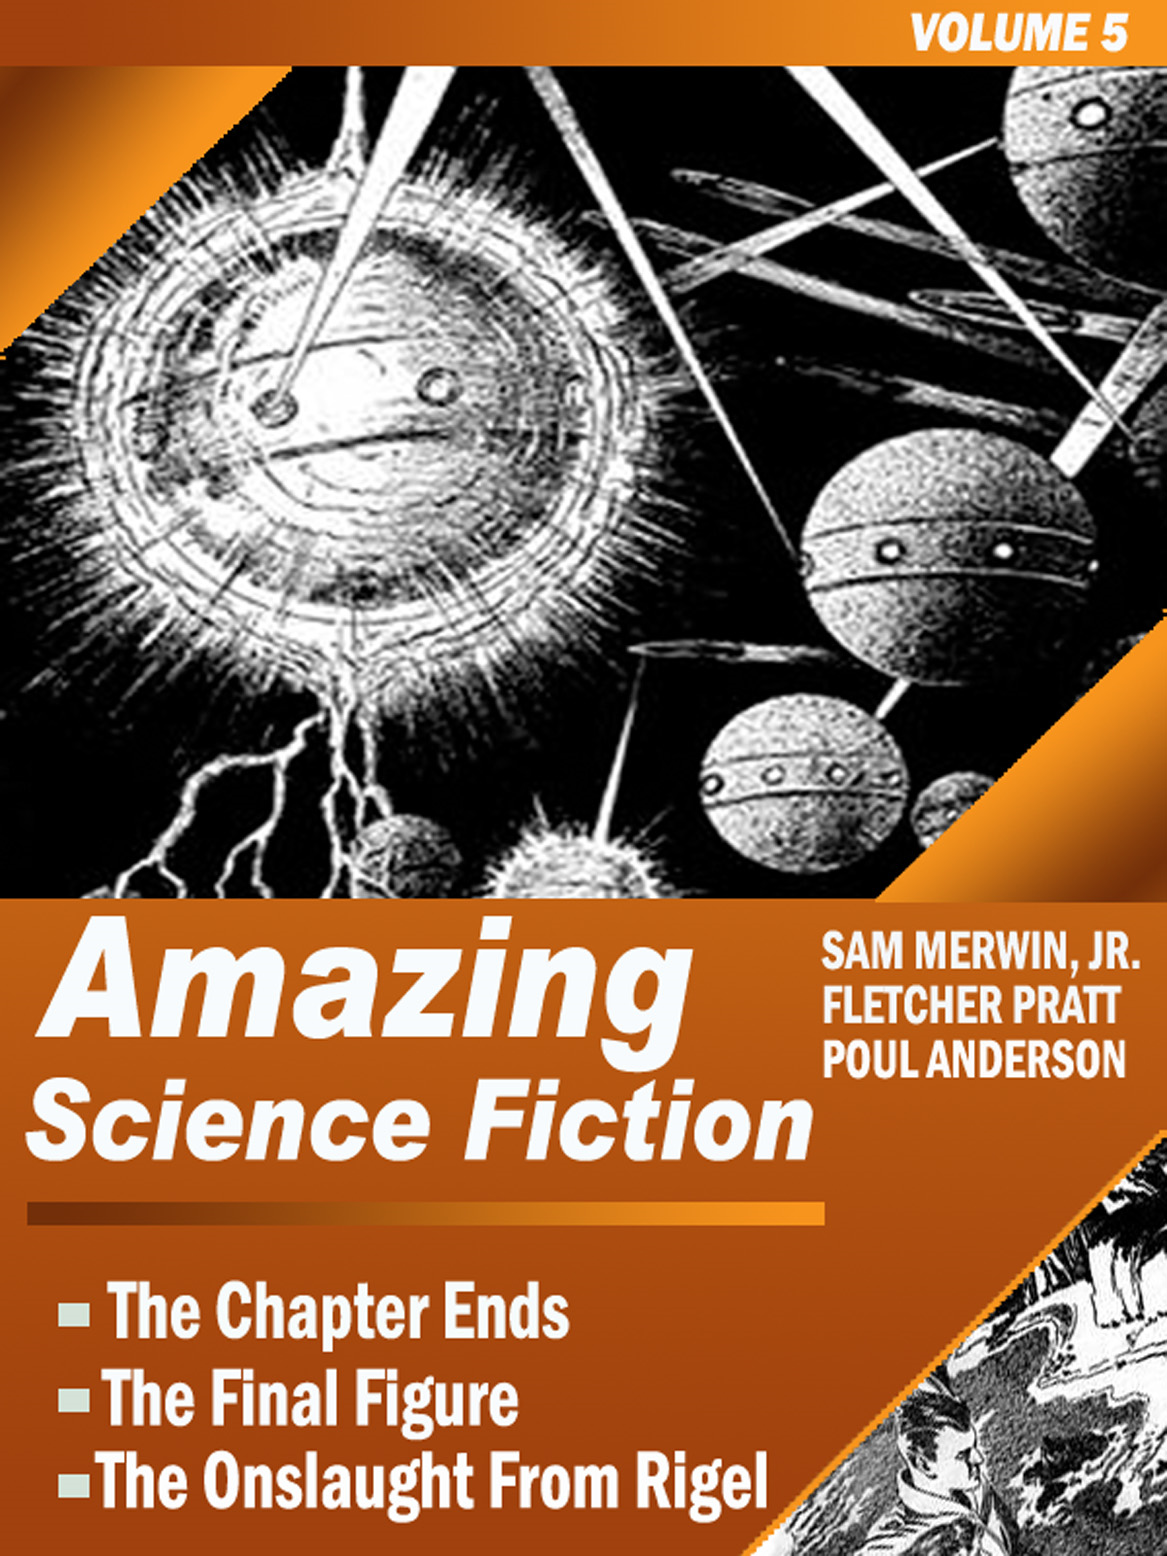 Amazing Science Fiction - Volume 5 (The Chapter Ends, The Final Figure, The Onslaught from Rigel)